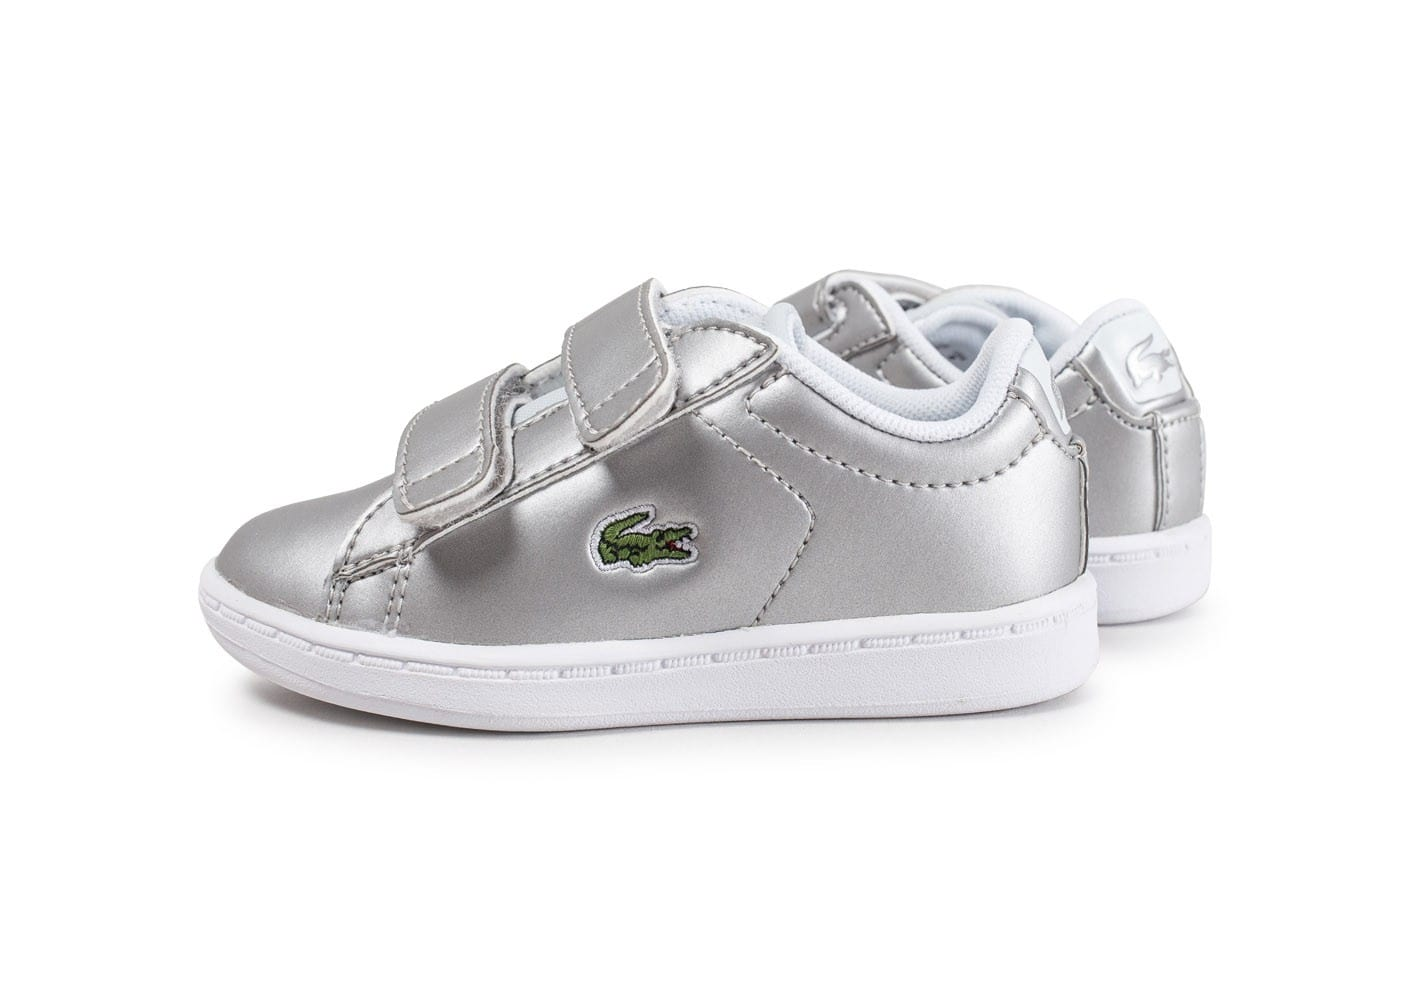 Lacoste carnaby evo b b argent chaussures enfant - Lacoste carnaby evo cls baskets en cuir perfore ...